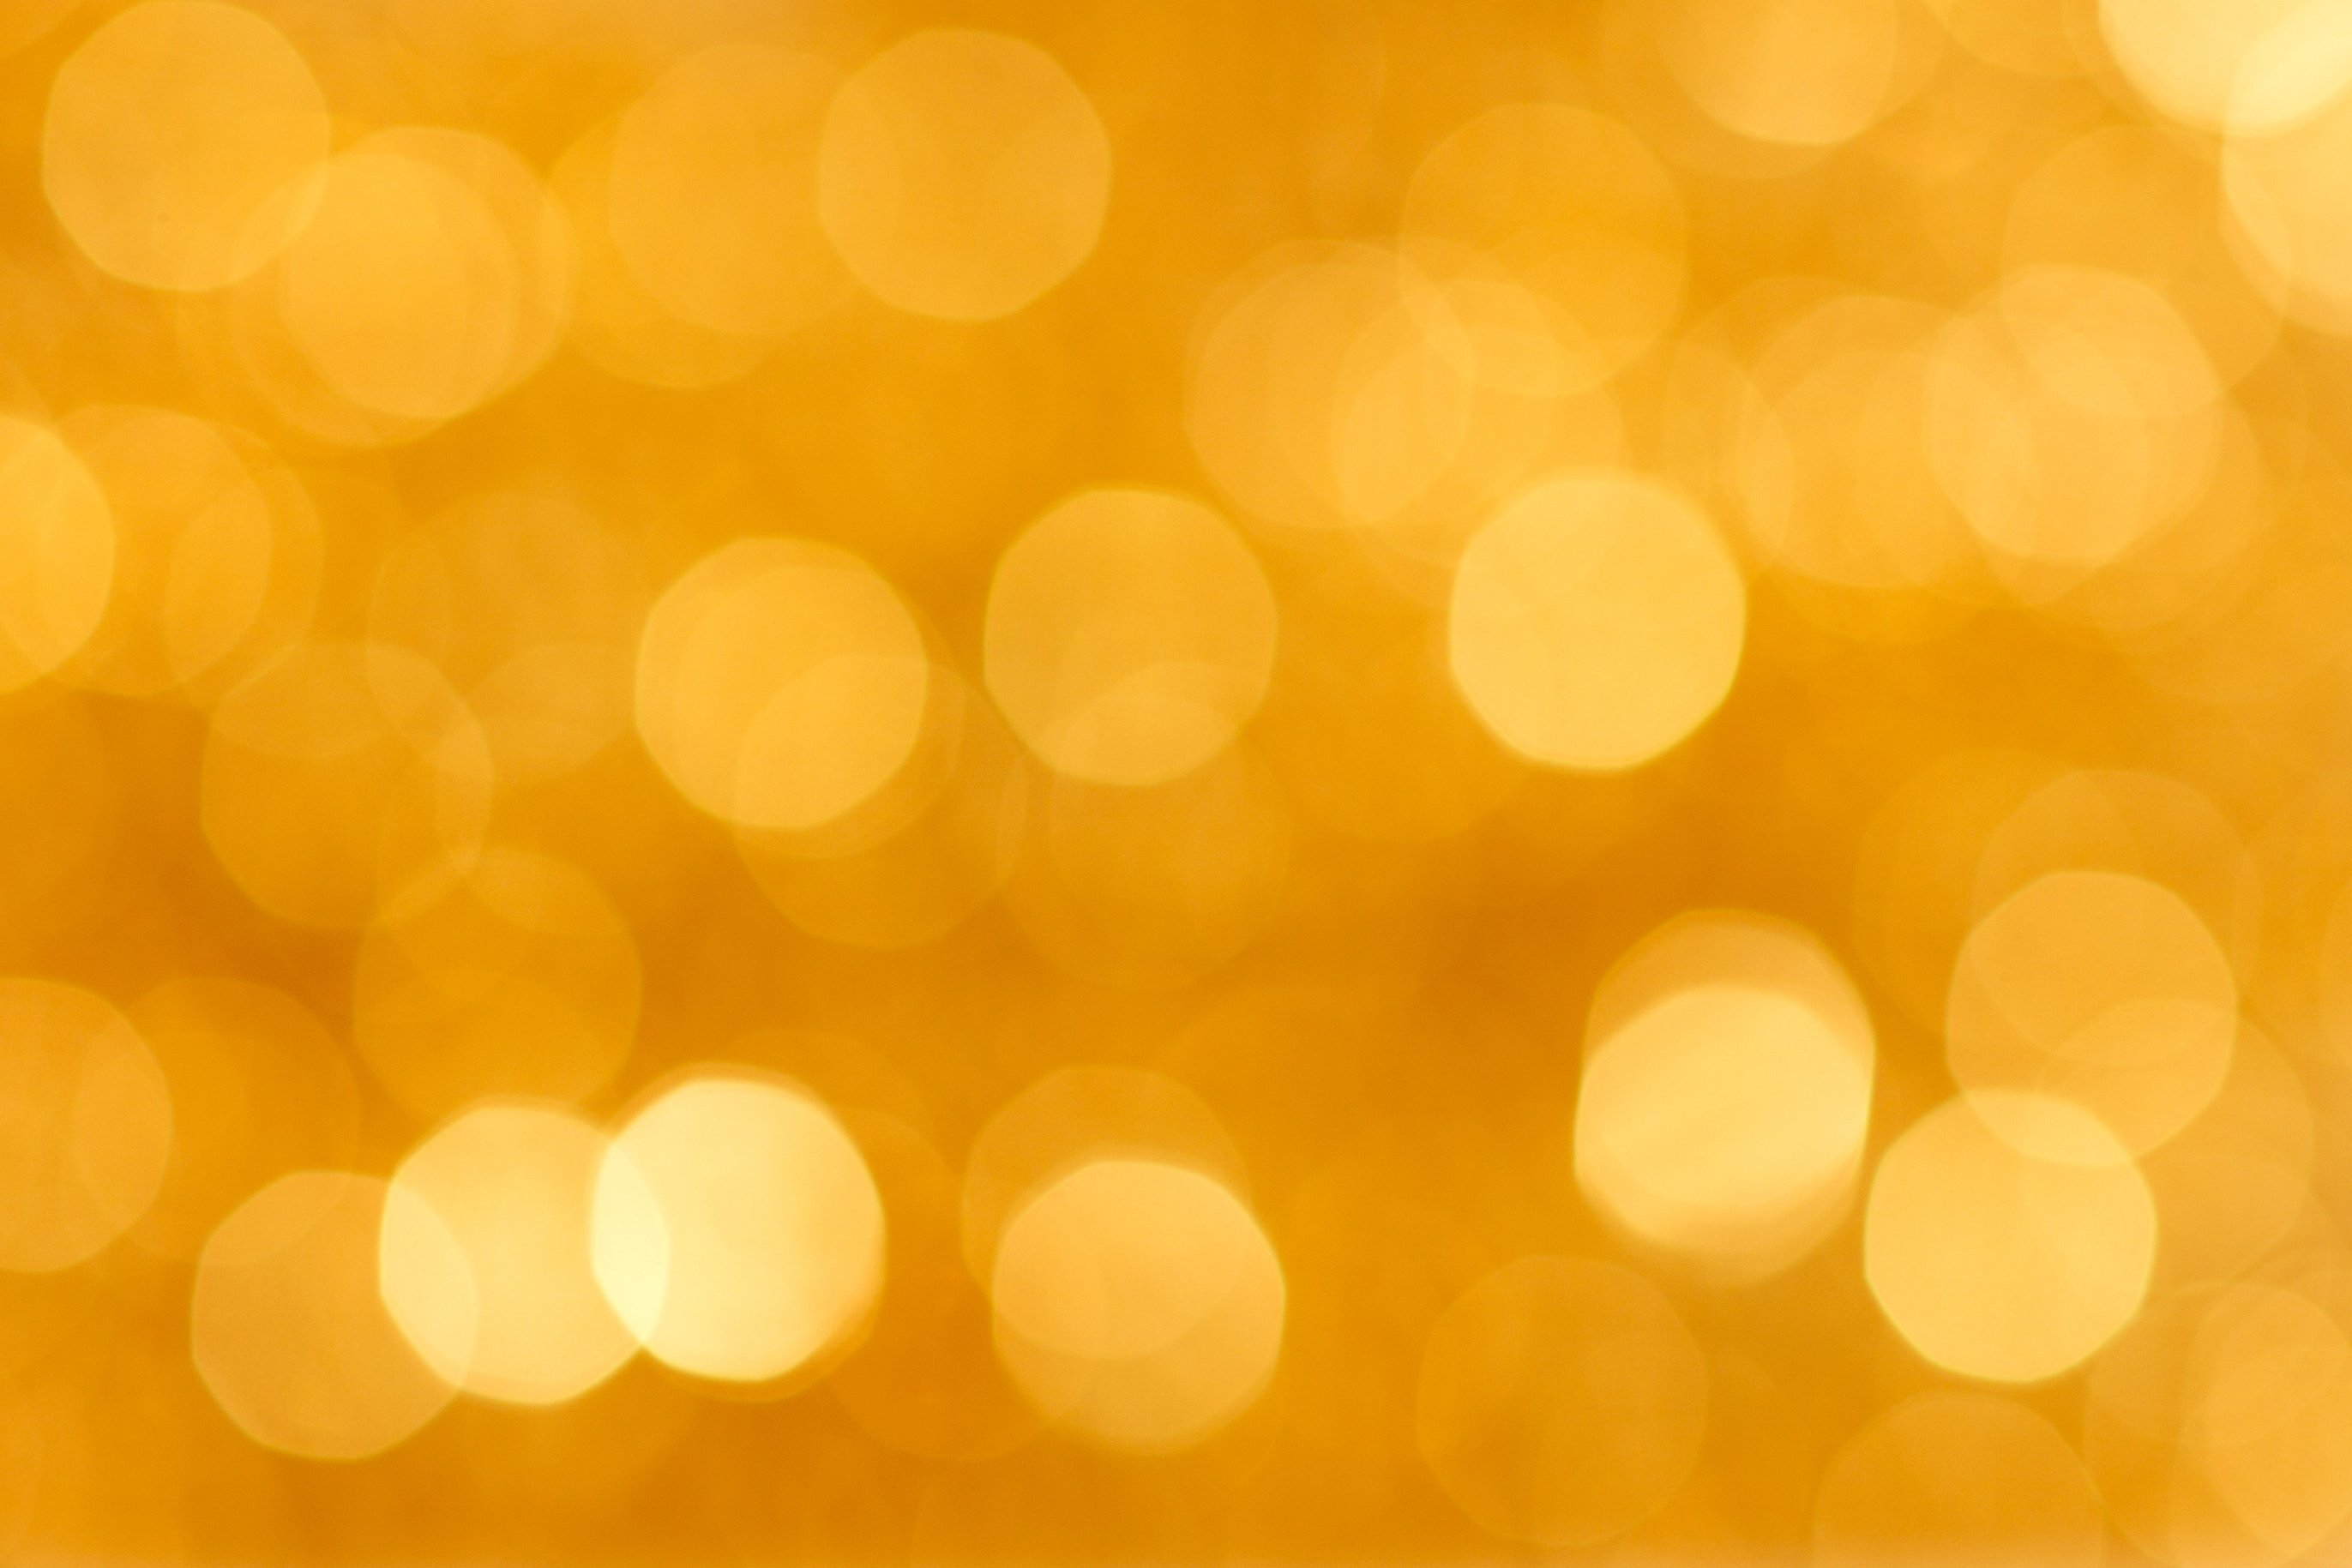 HD Blurred Golden Background For Image Use Desk Top 2743x1829